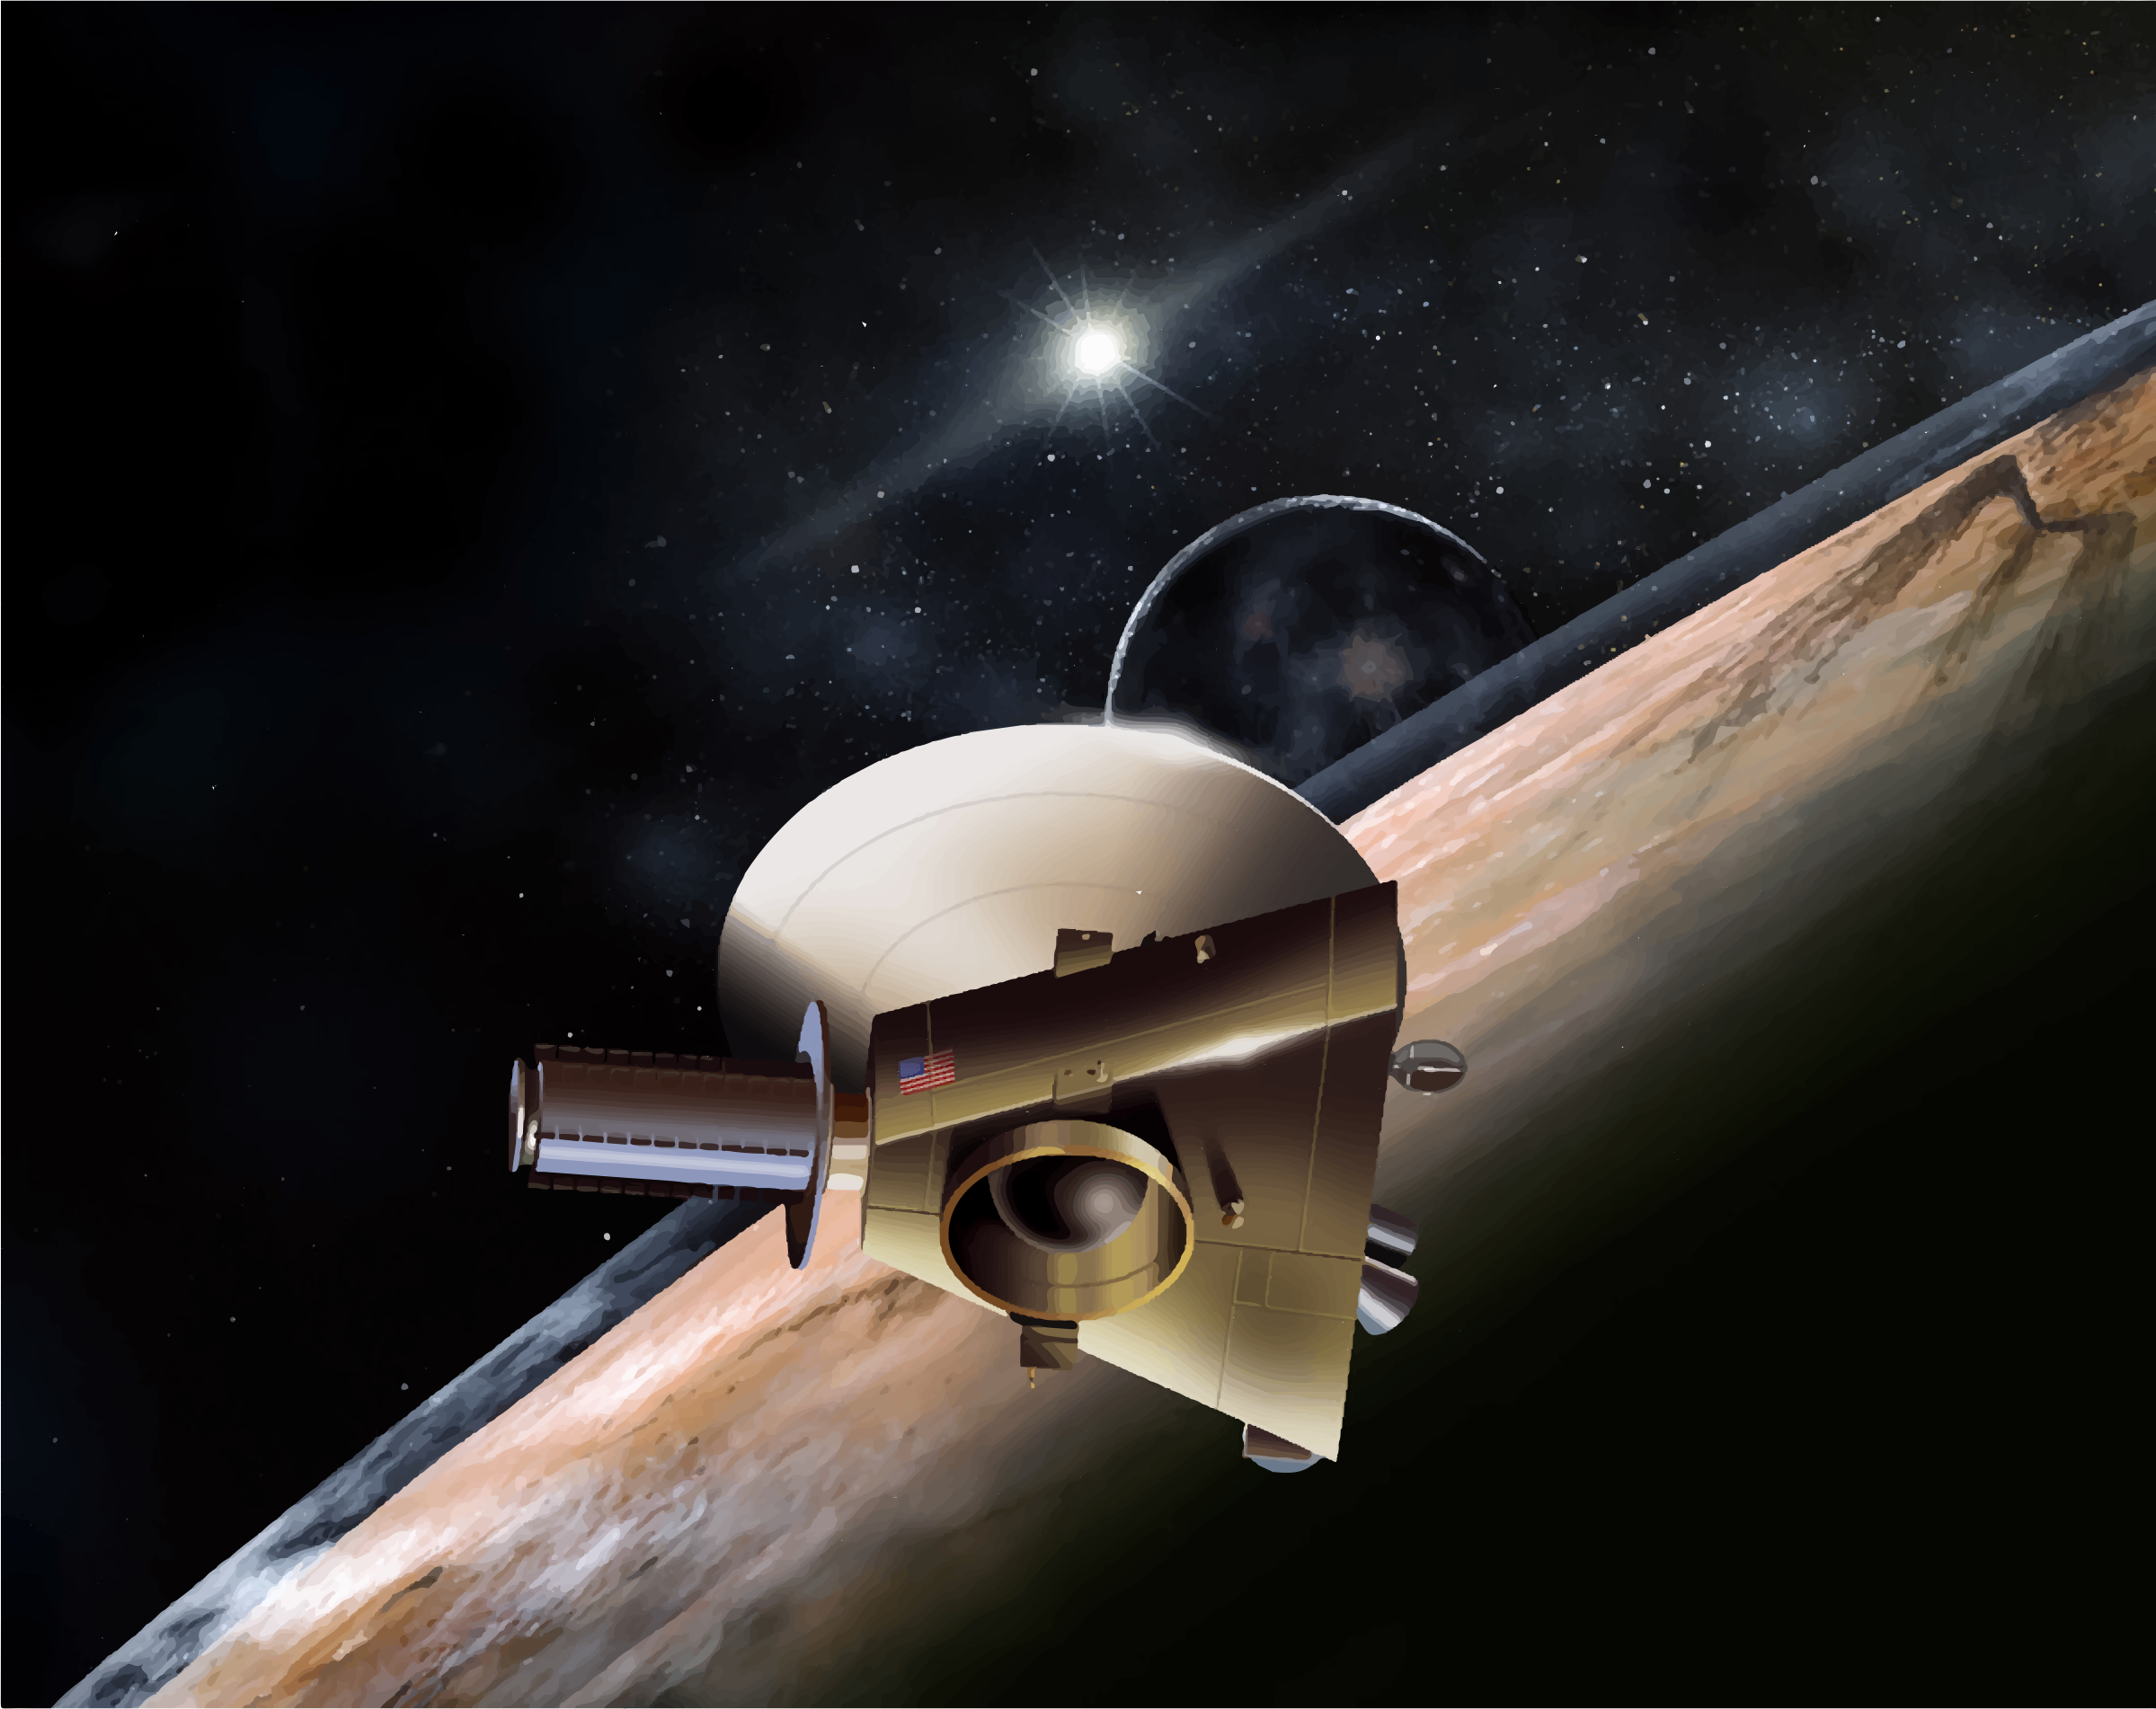 flyby spacecraft and pluto - photo #19